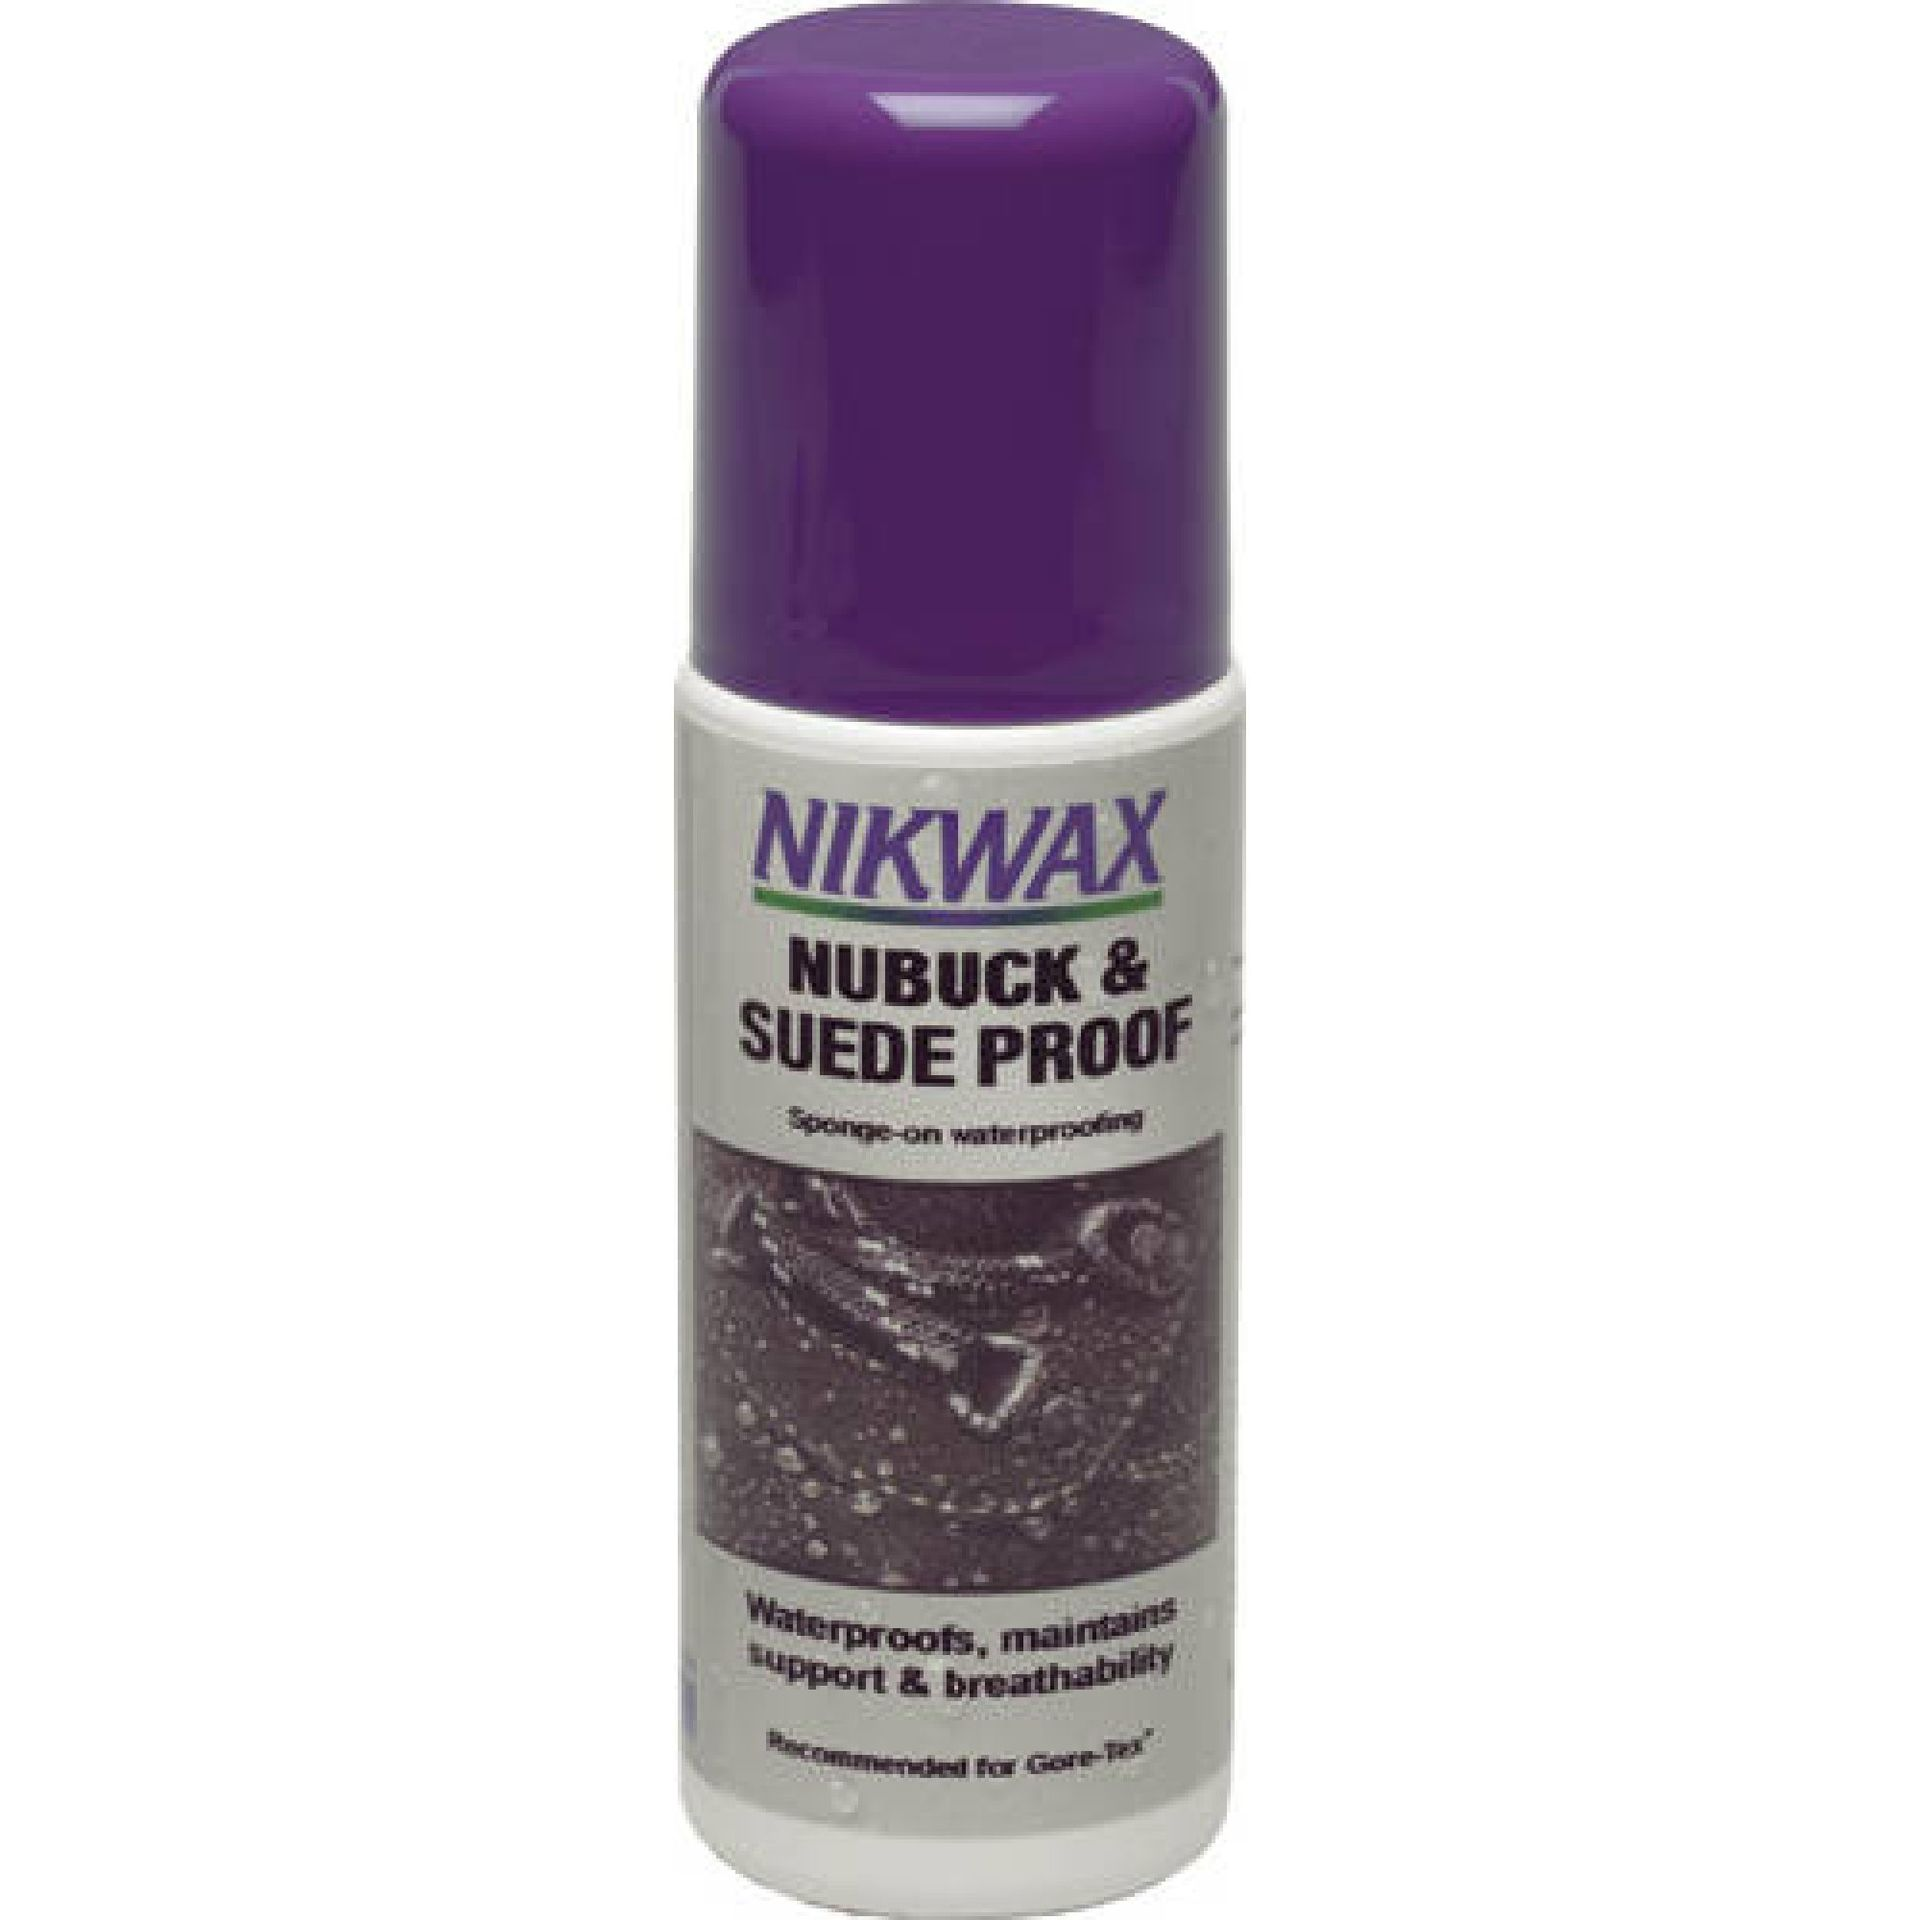 IMPREGNAT NIKWAX NUBUK I WELUR SPRAY ON 1